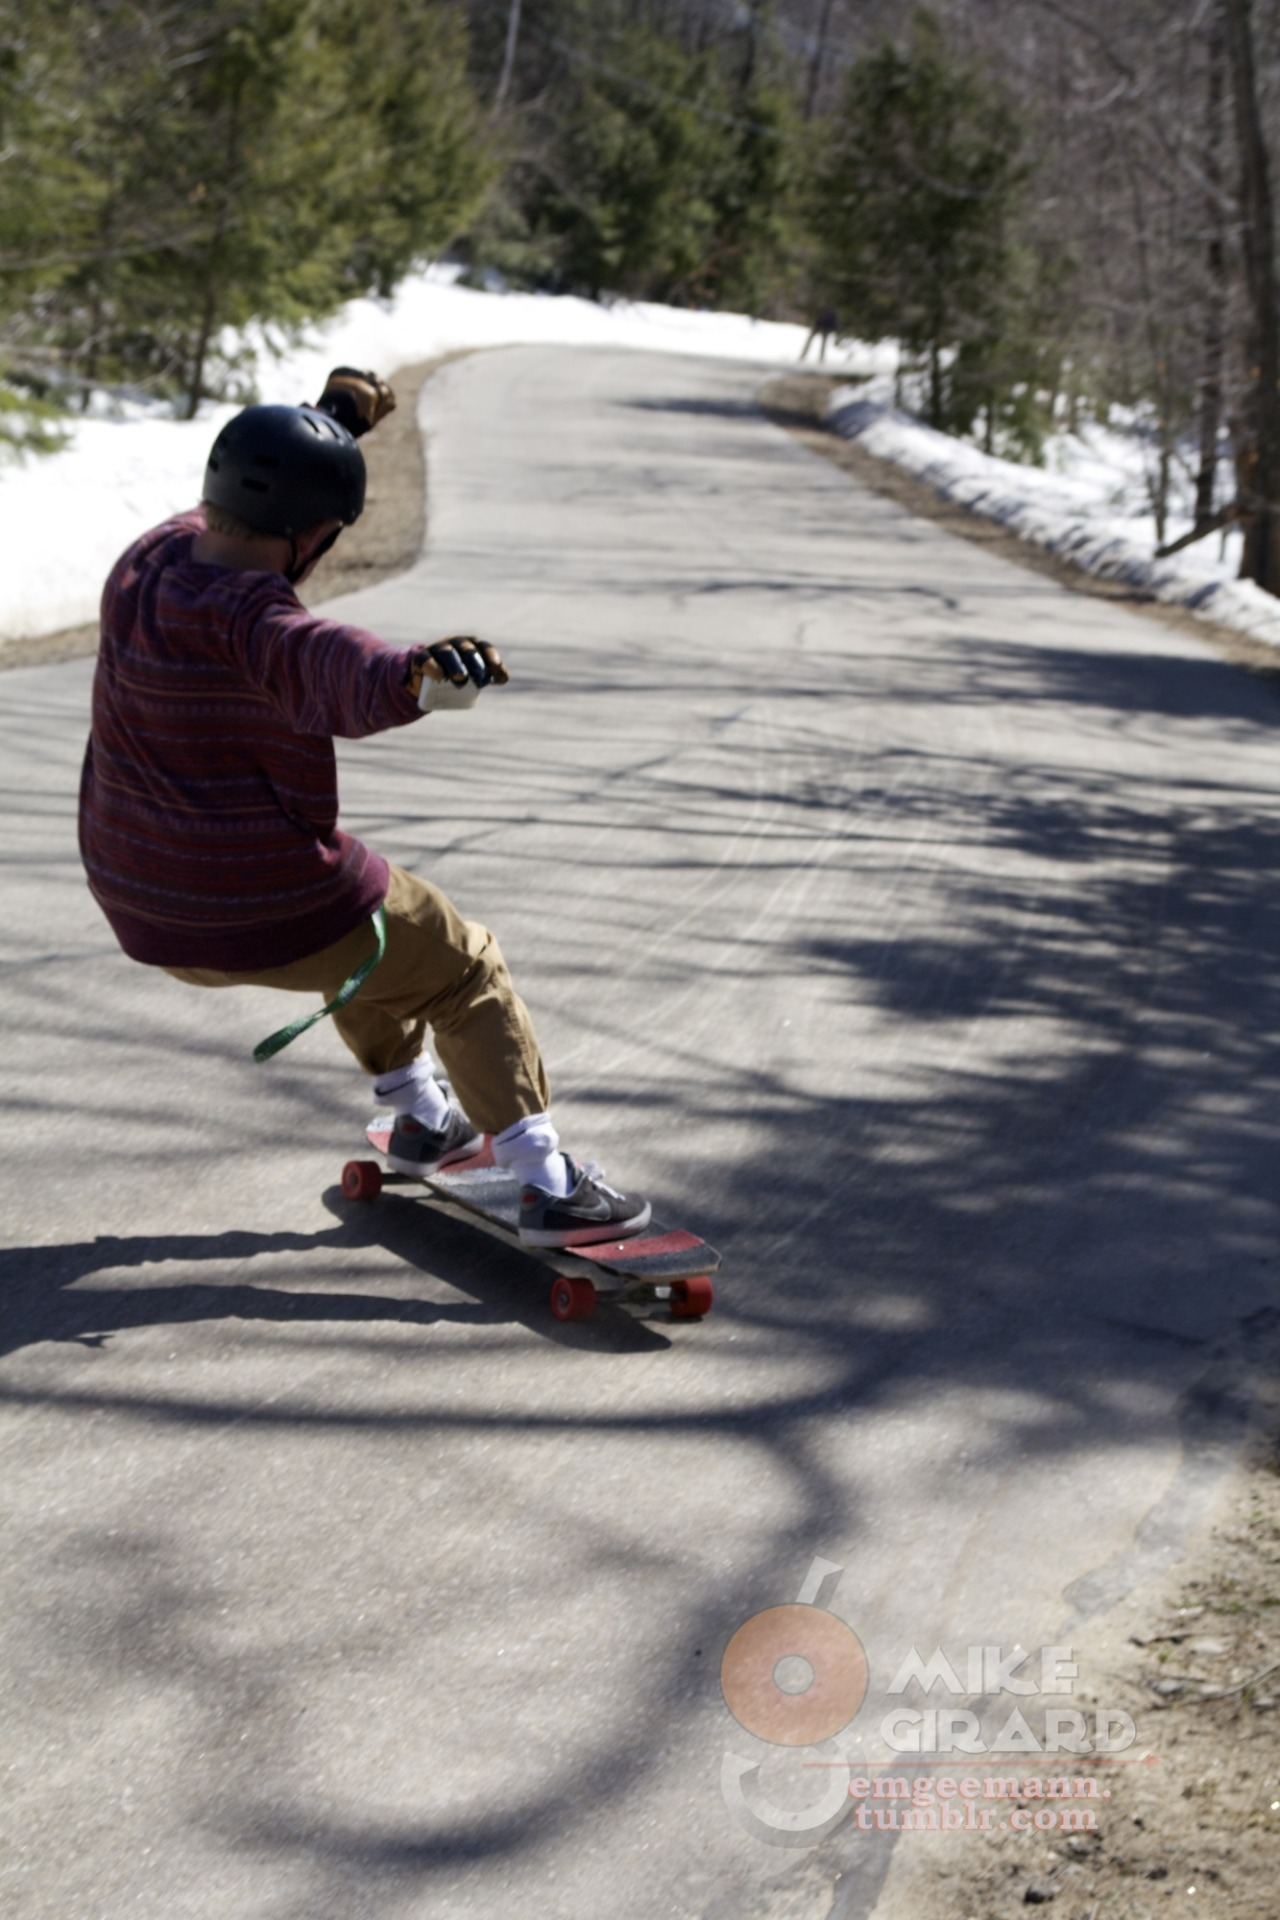 Gangster Lean. NH. Jordan Billingsley keeps it stylish on his beautiful local run. Photo by me. -MG